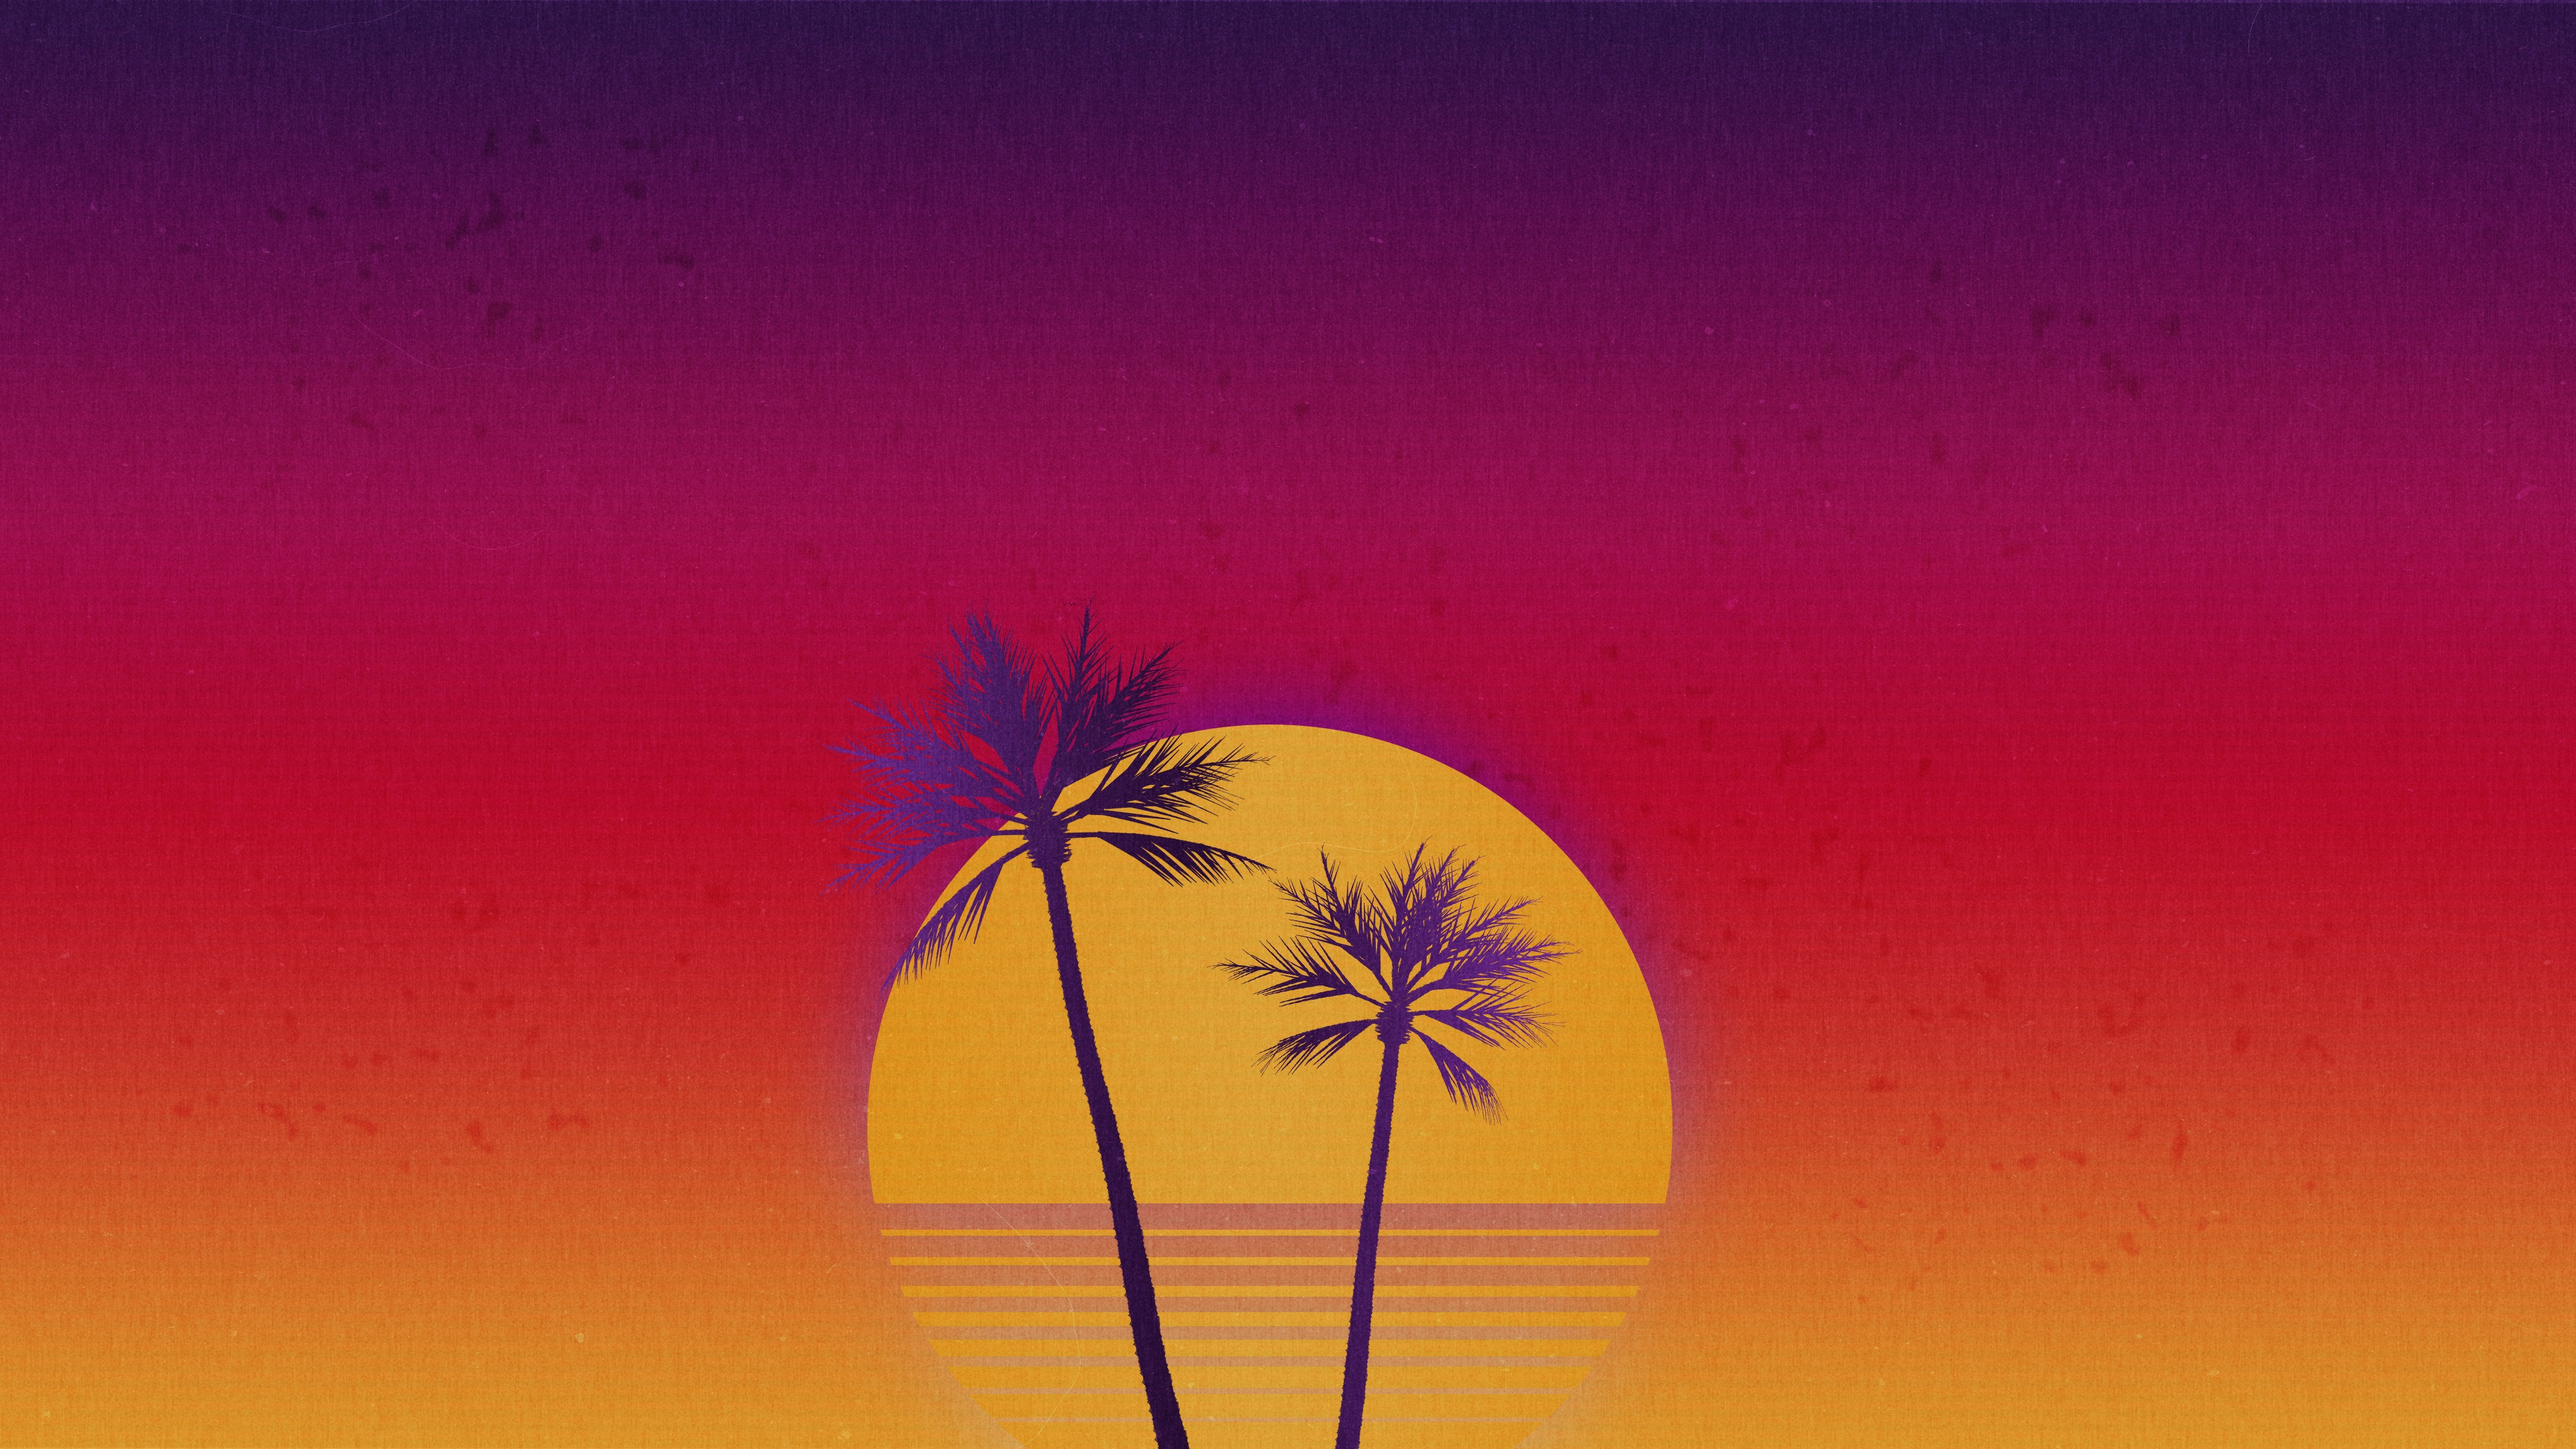 Outrun Sunset Wallpapers Wallpaper Cave